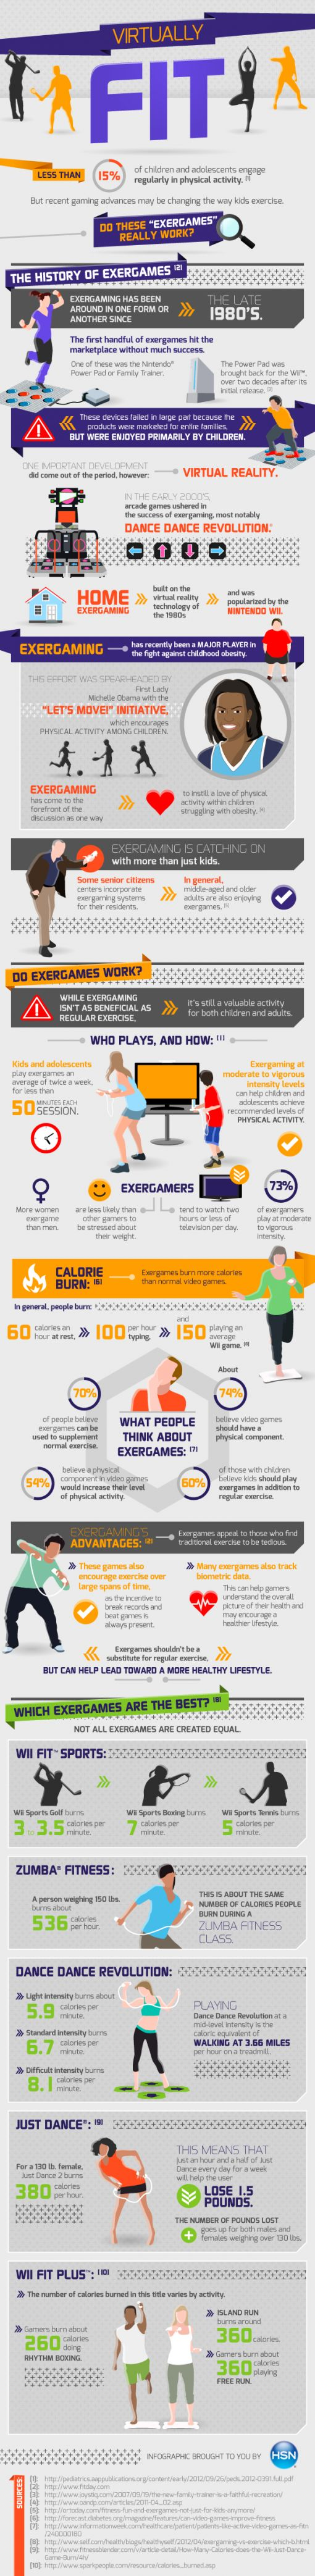 virtually-fit-infographic